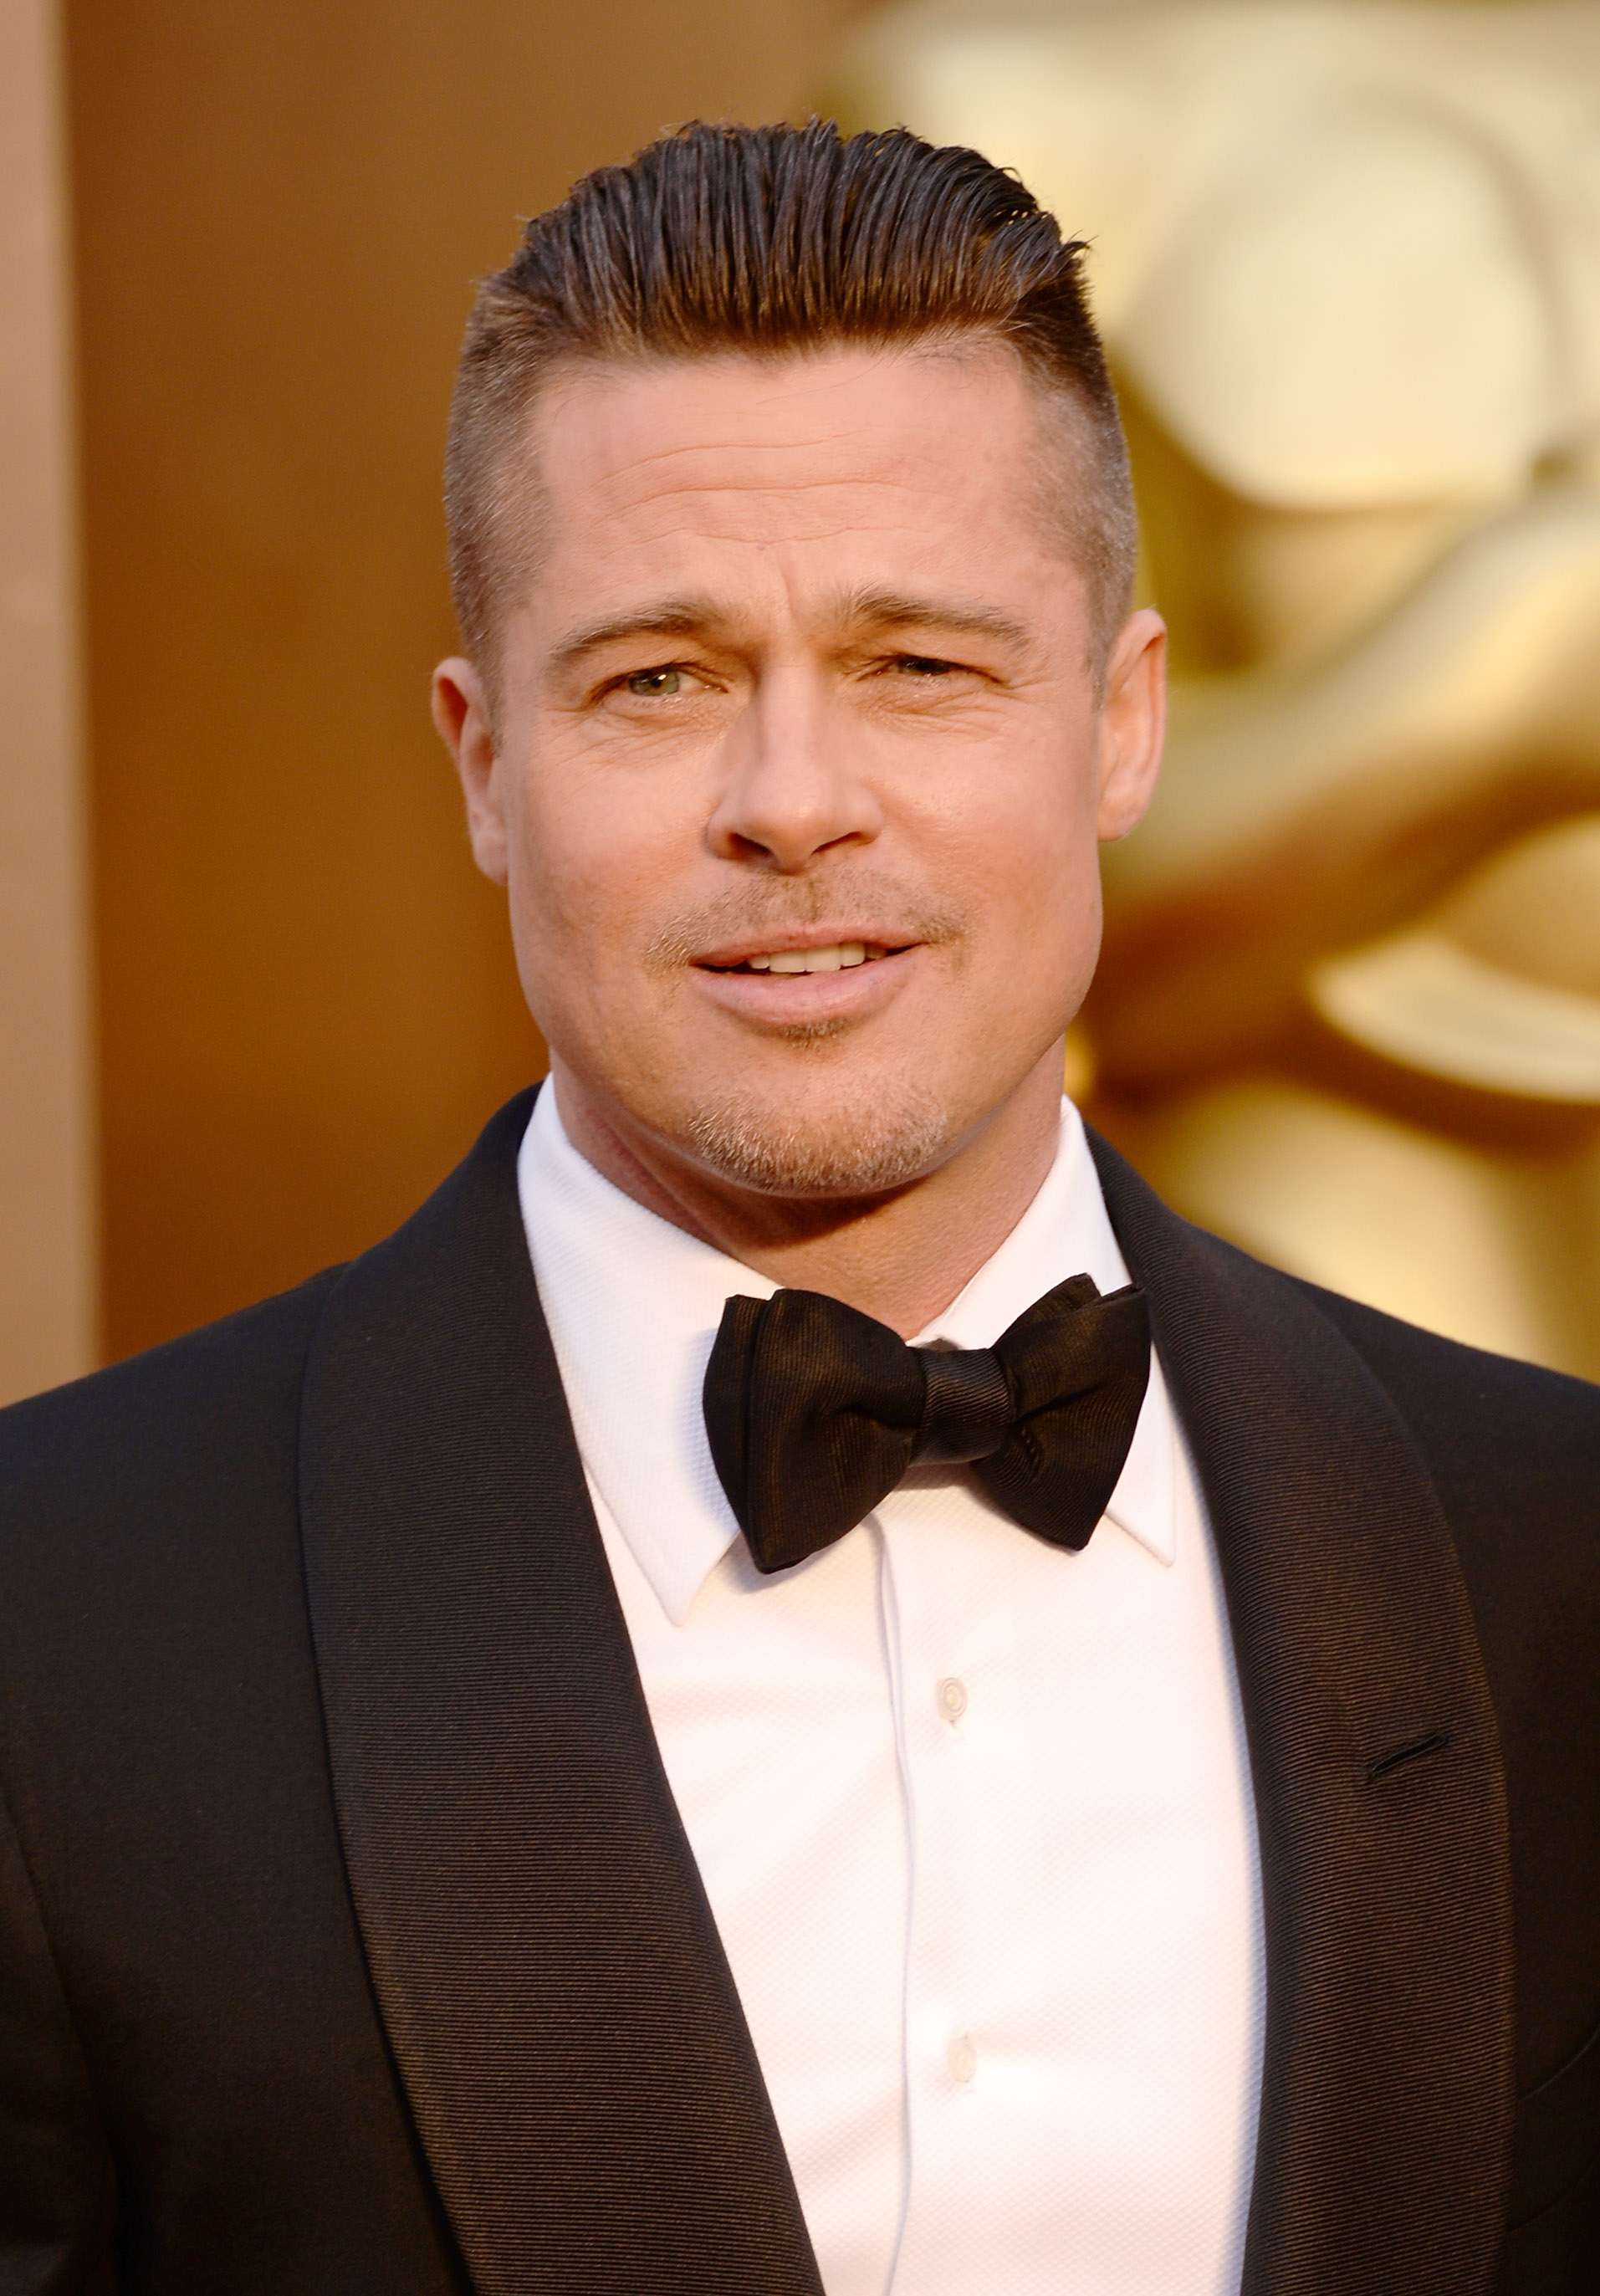 Brad Pitt viverá general no filme de guerra 'The Operators'